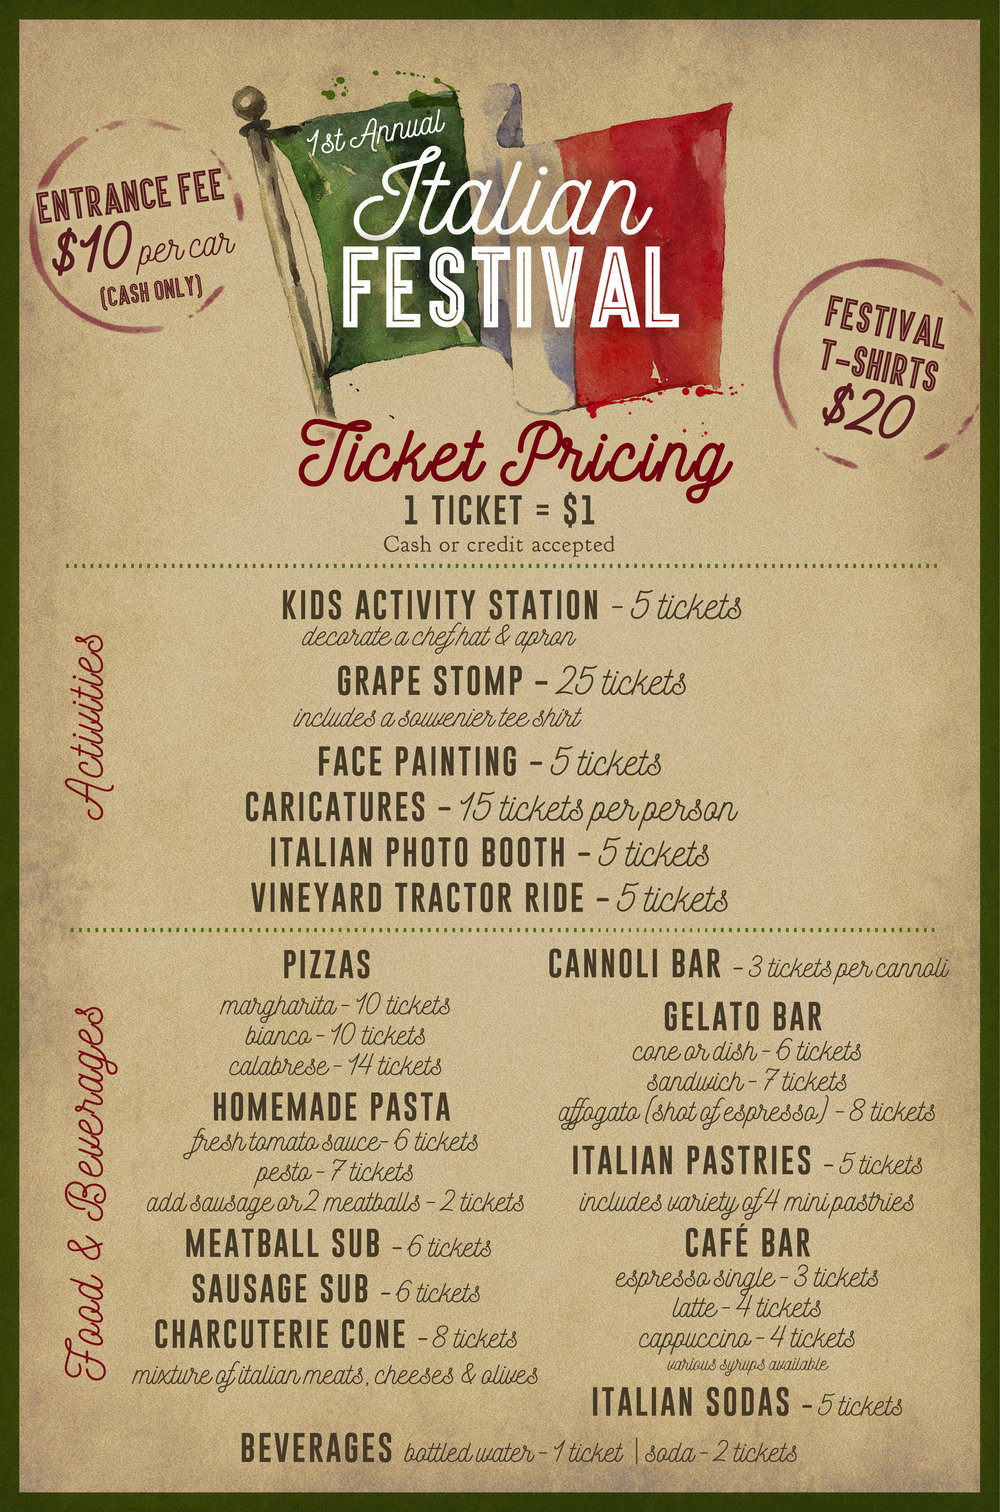 Italian Festival-Ticket Prices.jpg